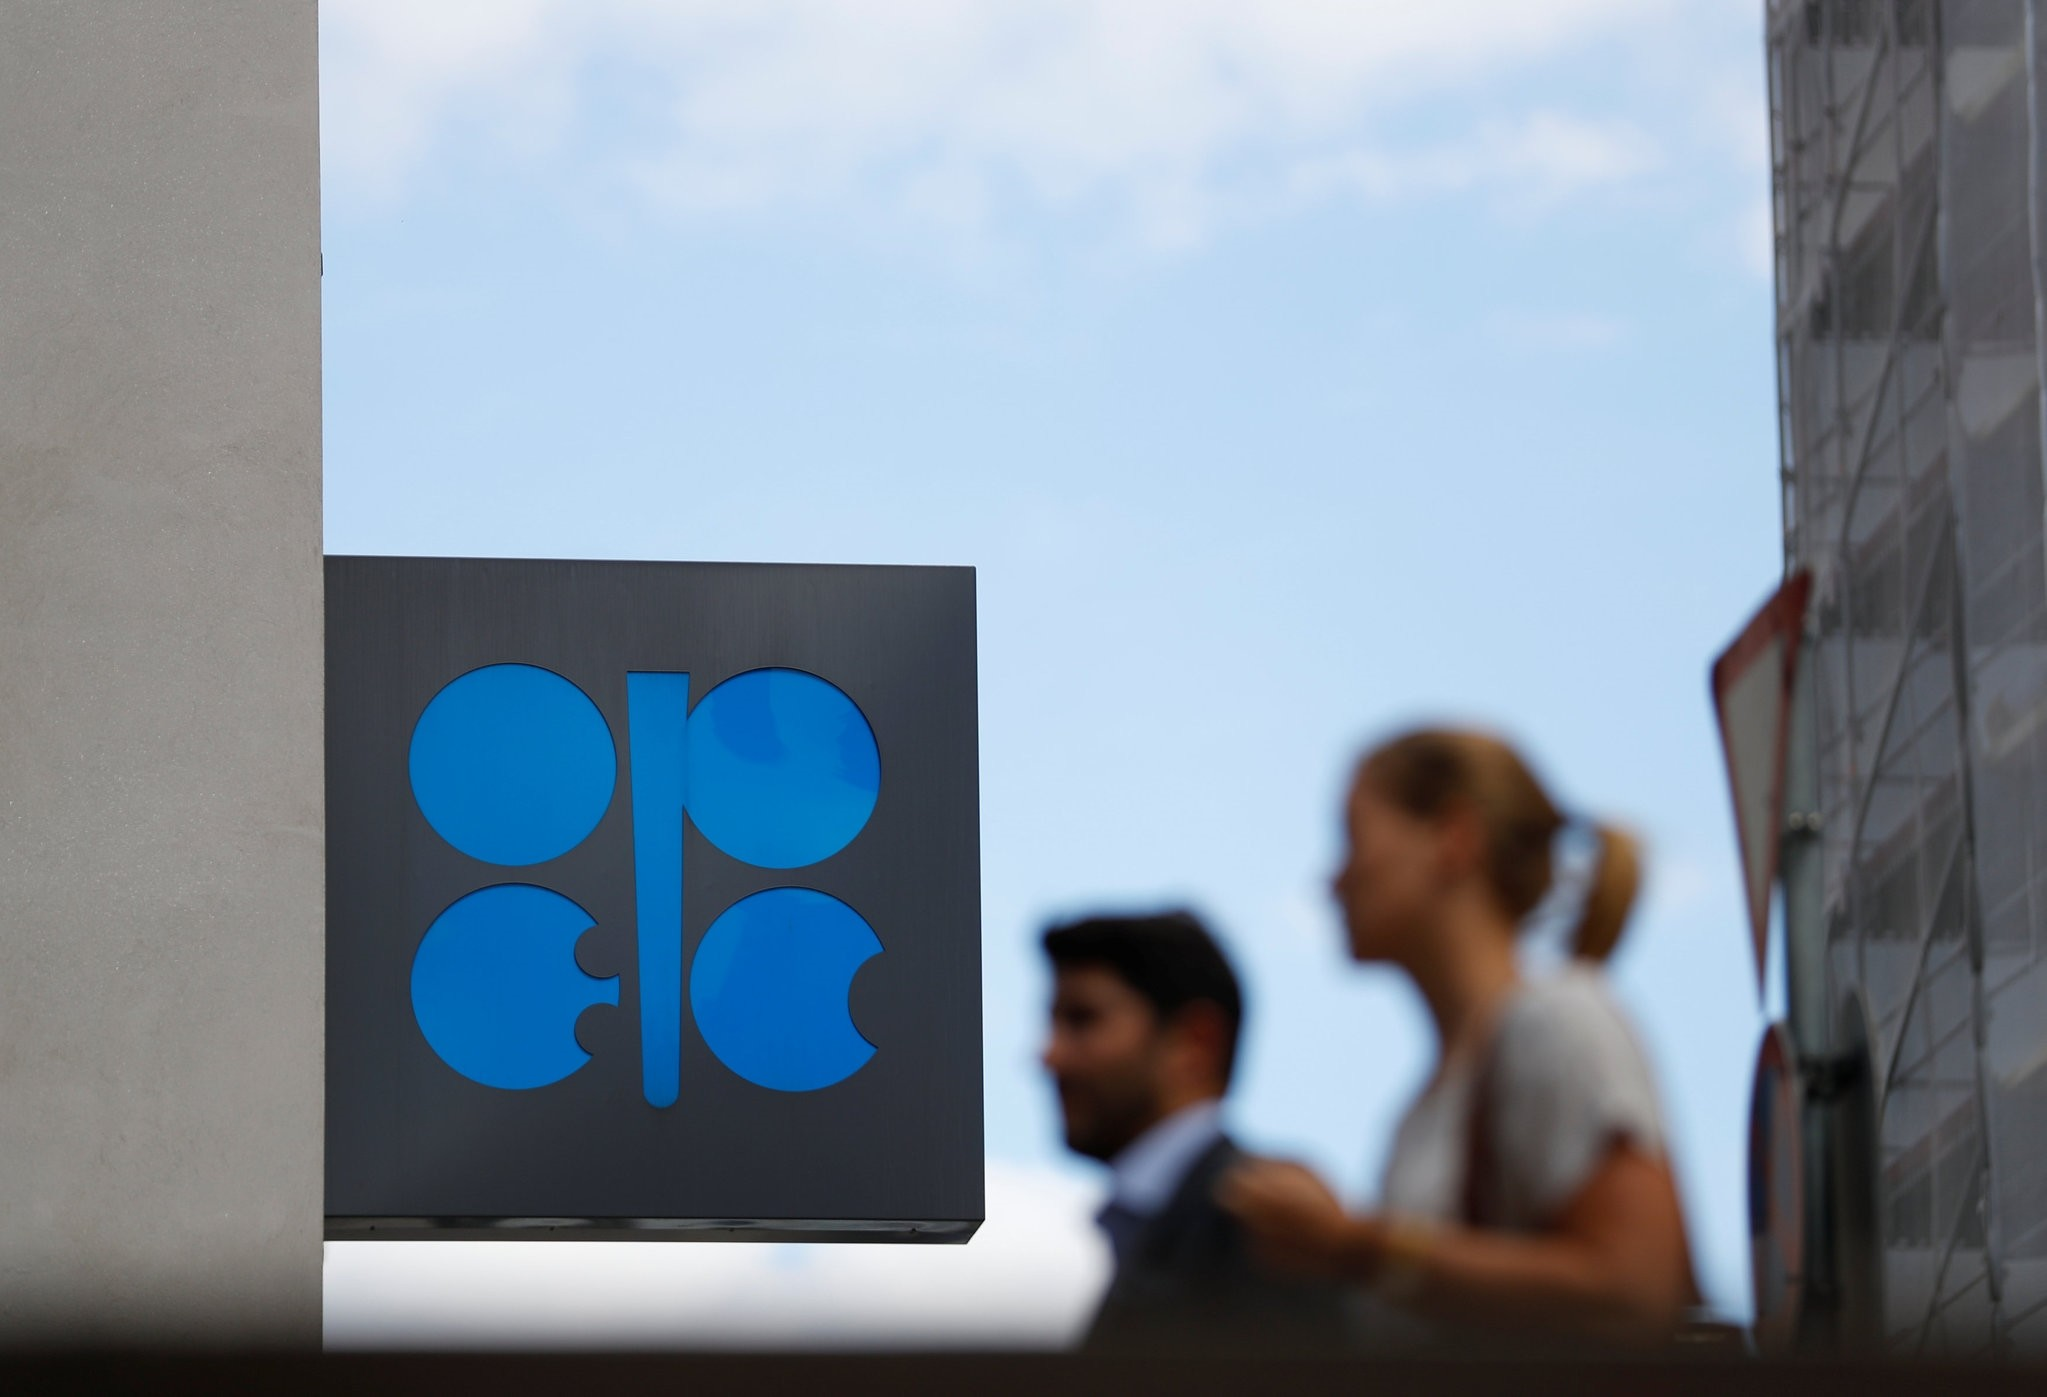 People pass the logo of the Organization of the Petroleum Exporting Countries (OPEC) in front of OPECu2019s headquarters in Vienna, Austria, June 19.